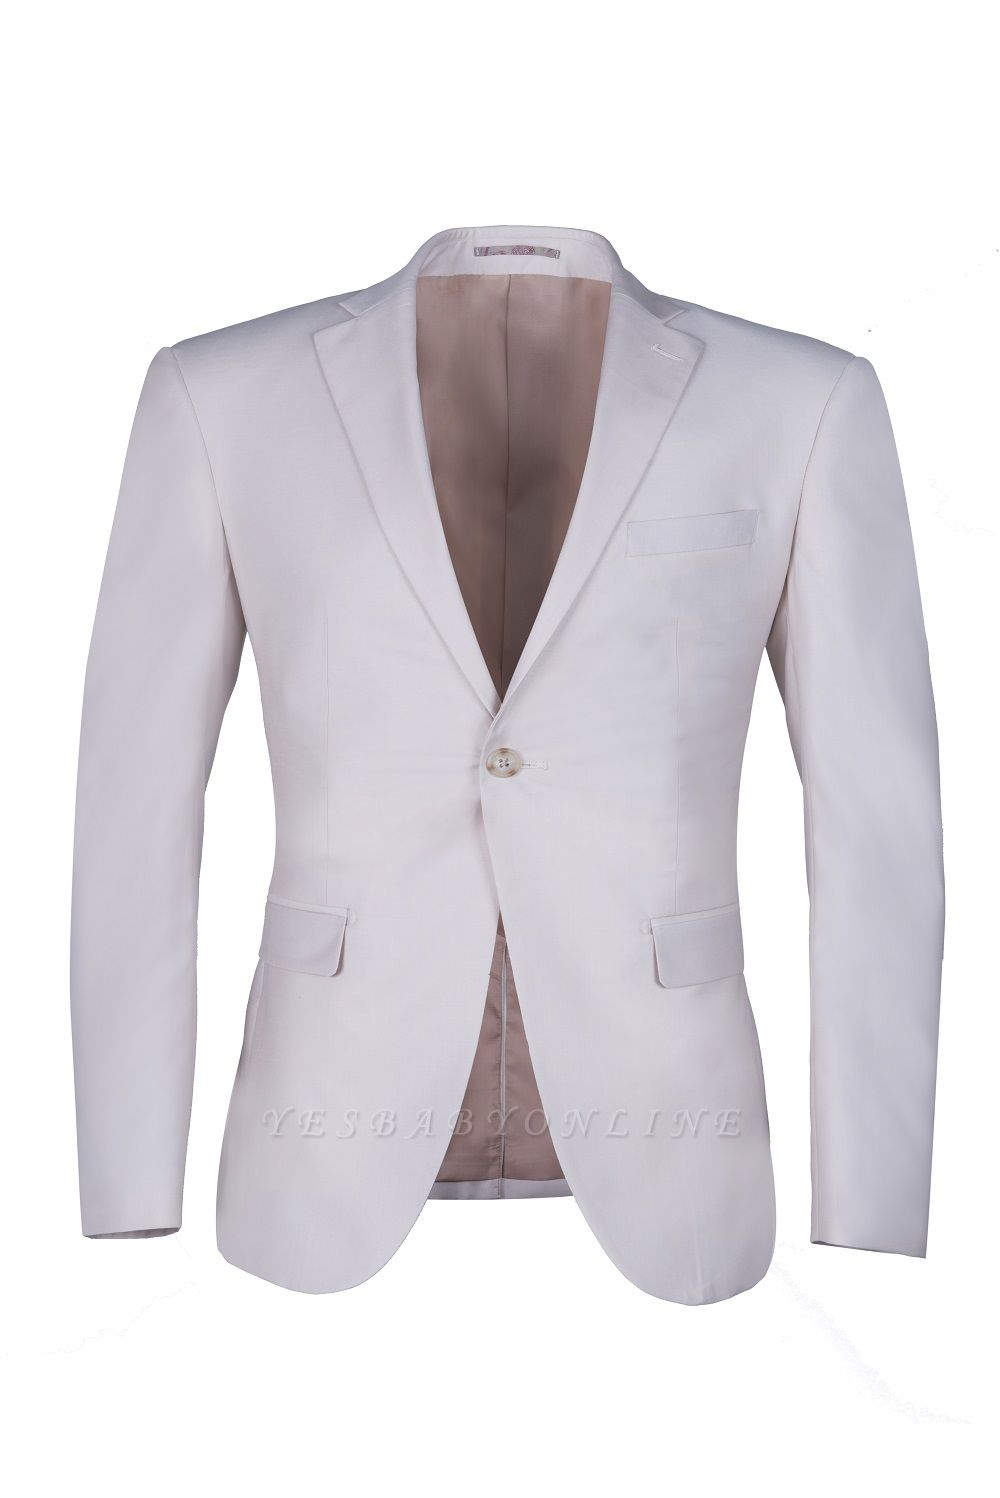 Customize Casual Suit Groomsmen Ivory Peak Lapel Single Breasted High Quality